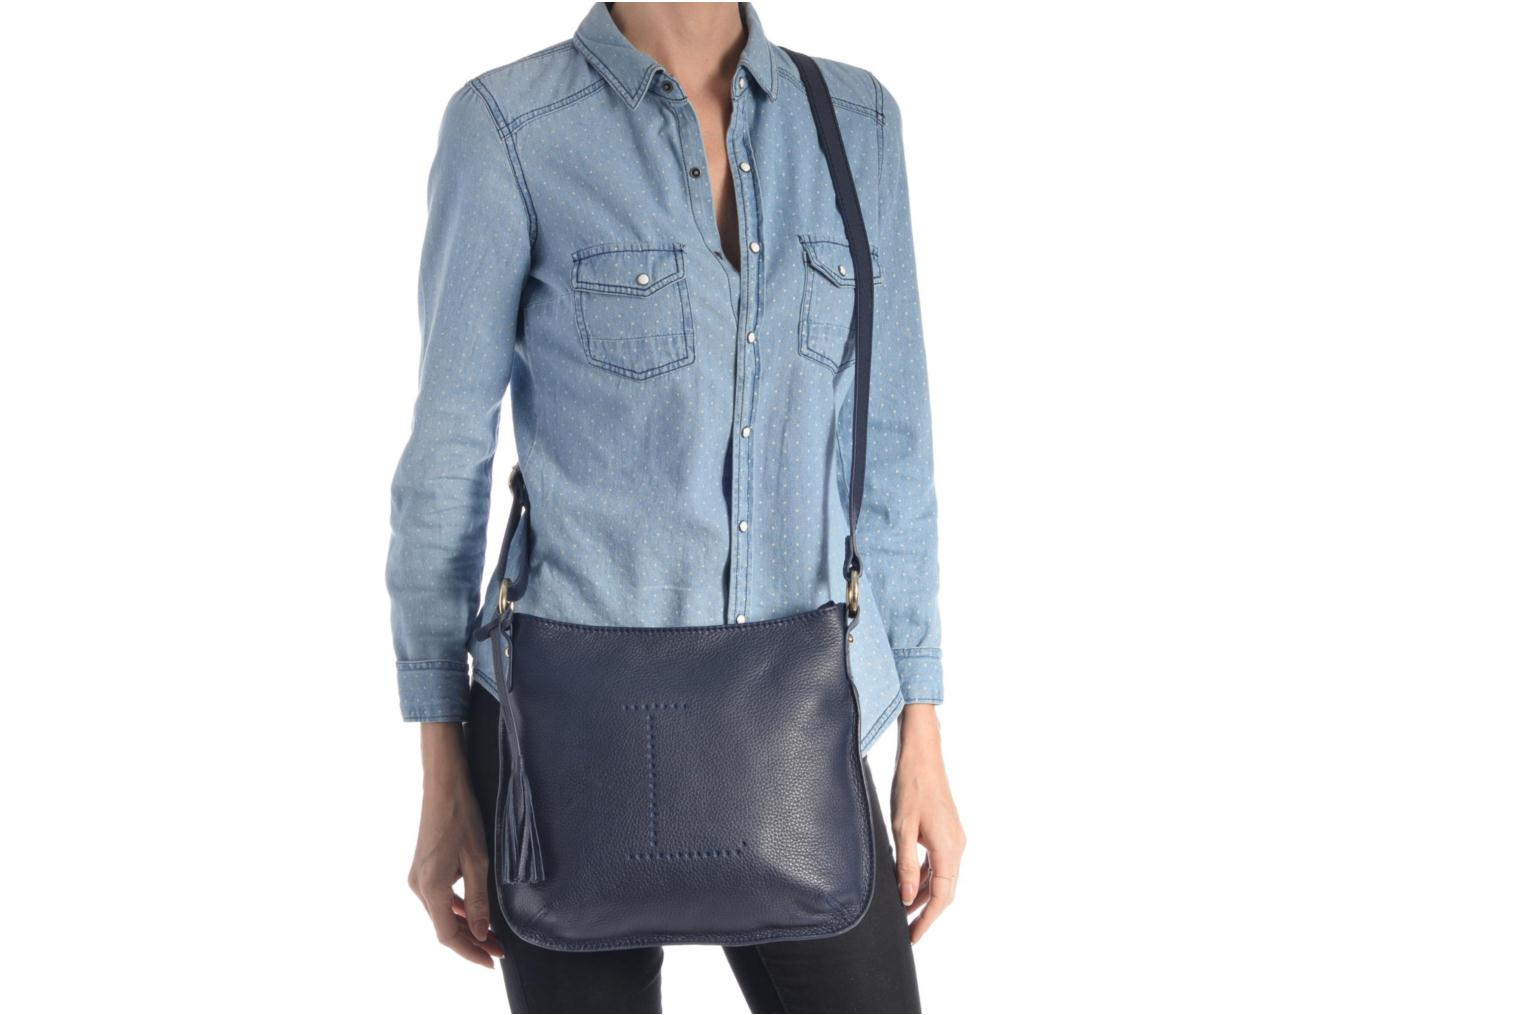 Célia Loxwood Célia Loxwood Denim qqPwd0rx